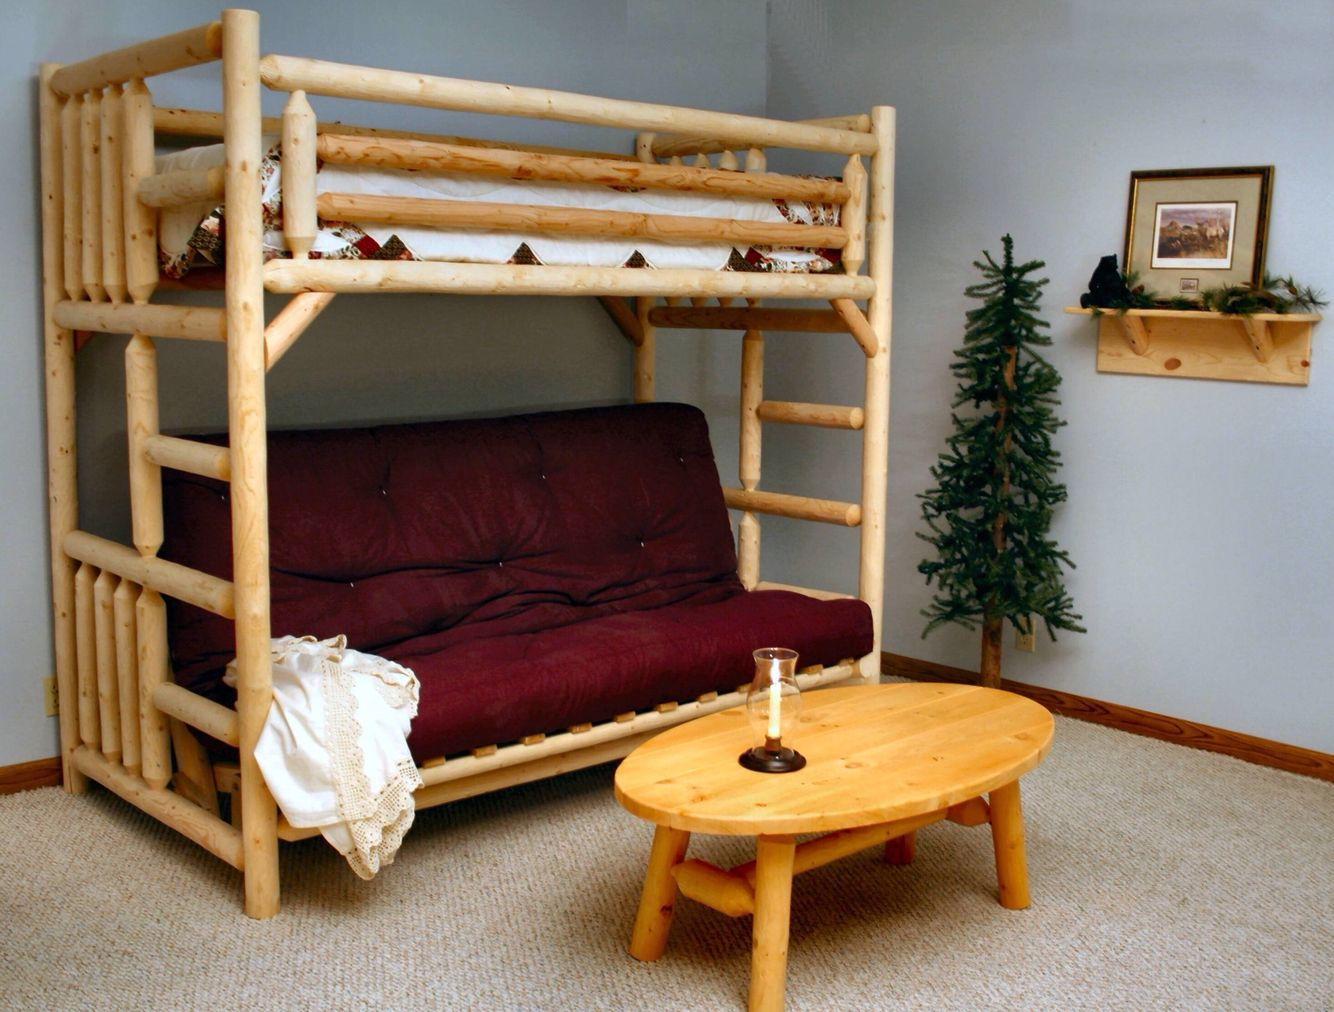 Camper ideas Couch bunk beds, Cool bunk beds, Futon bunk bed